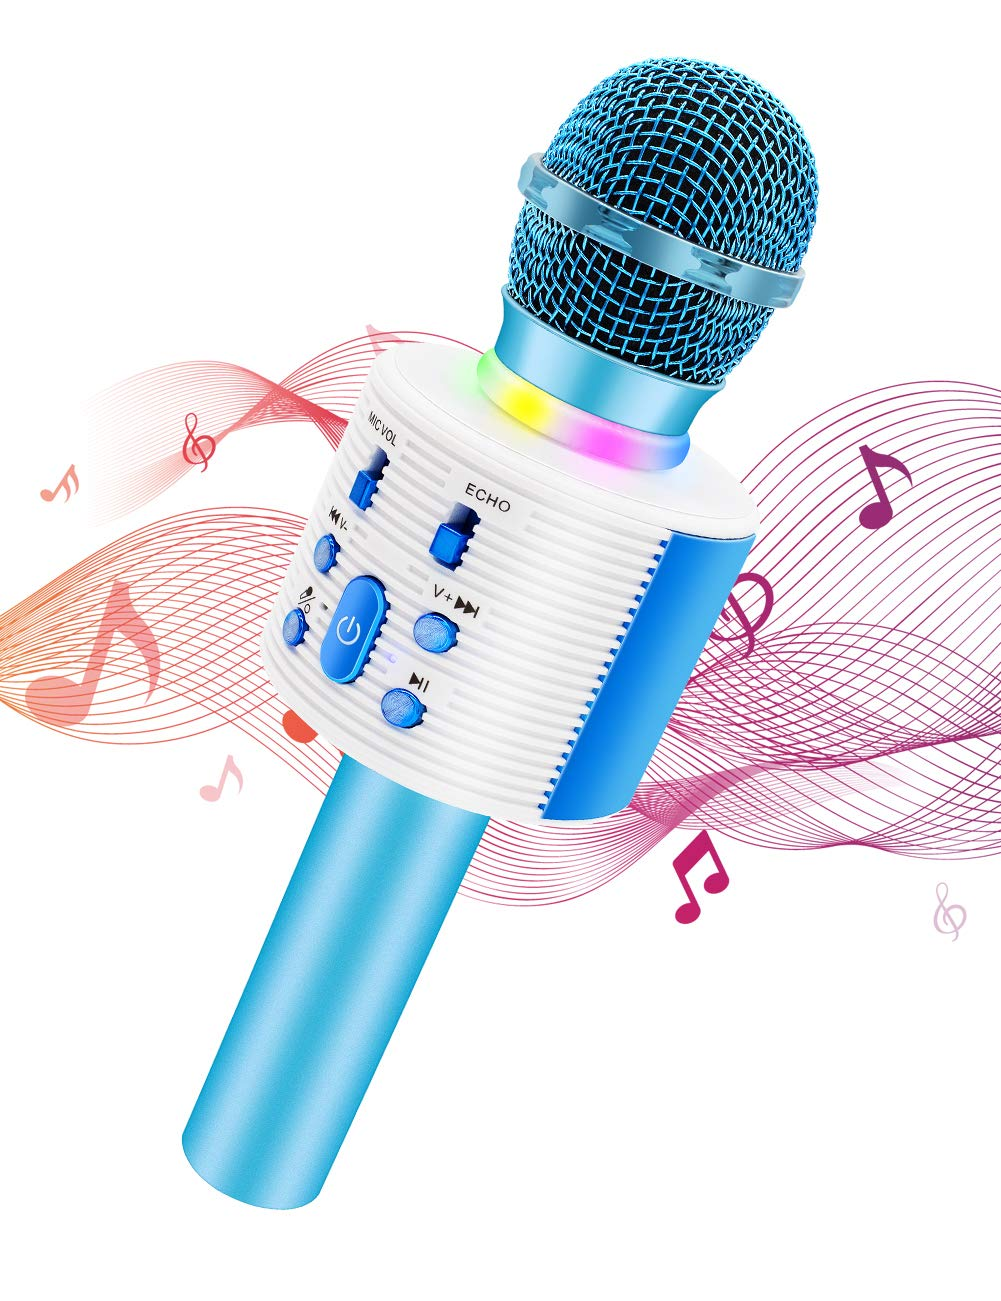 Wireless Karaoke Microphone with Speaker Pro, 3-in-1 Portable Handheld Karaoke Mic Home Party Birthday Gifts for Kids Speaker Machine for Android/ PC /phone(Blue)